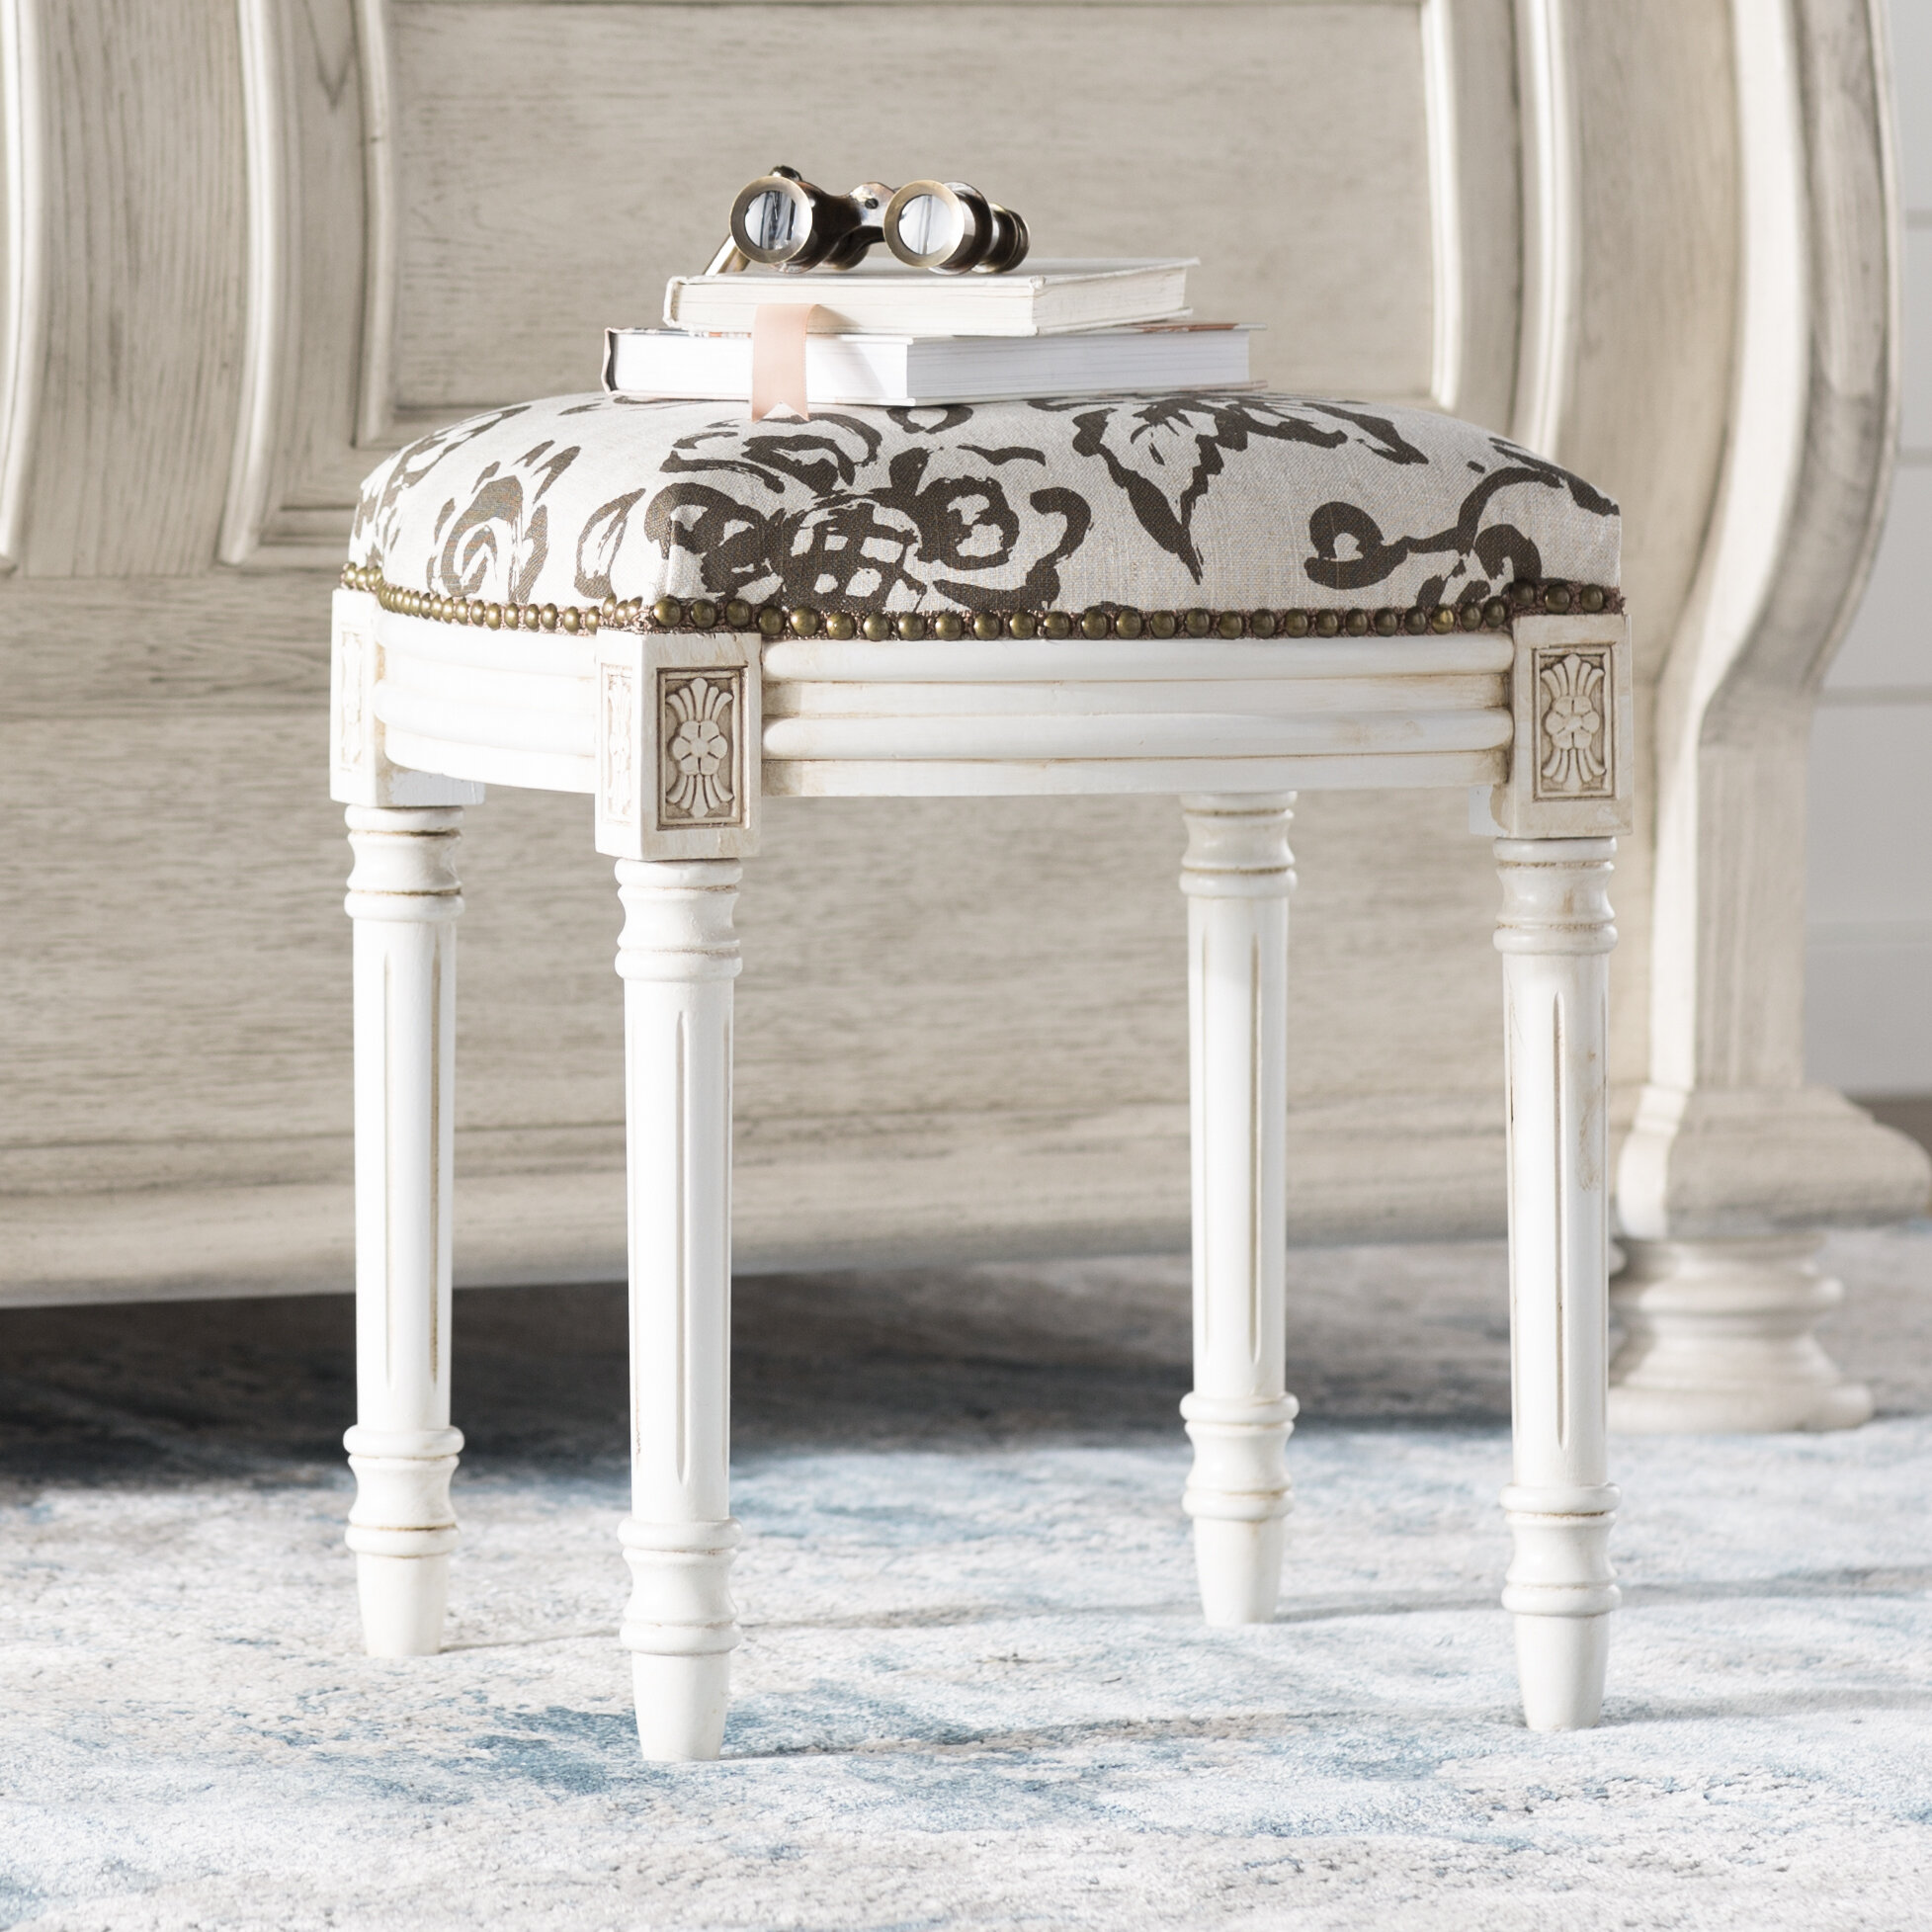 Floral Vanity Accent Stools You Ll Love In 2021 Wayfair